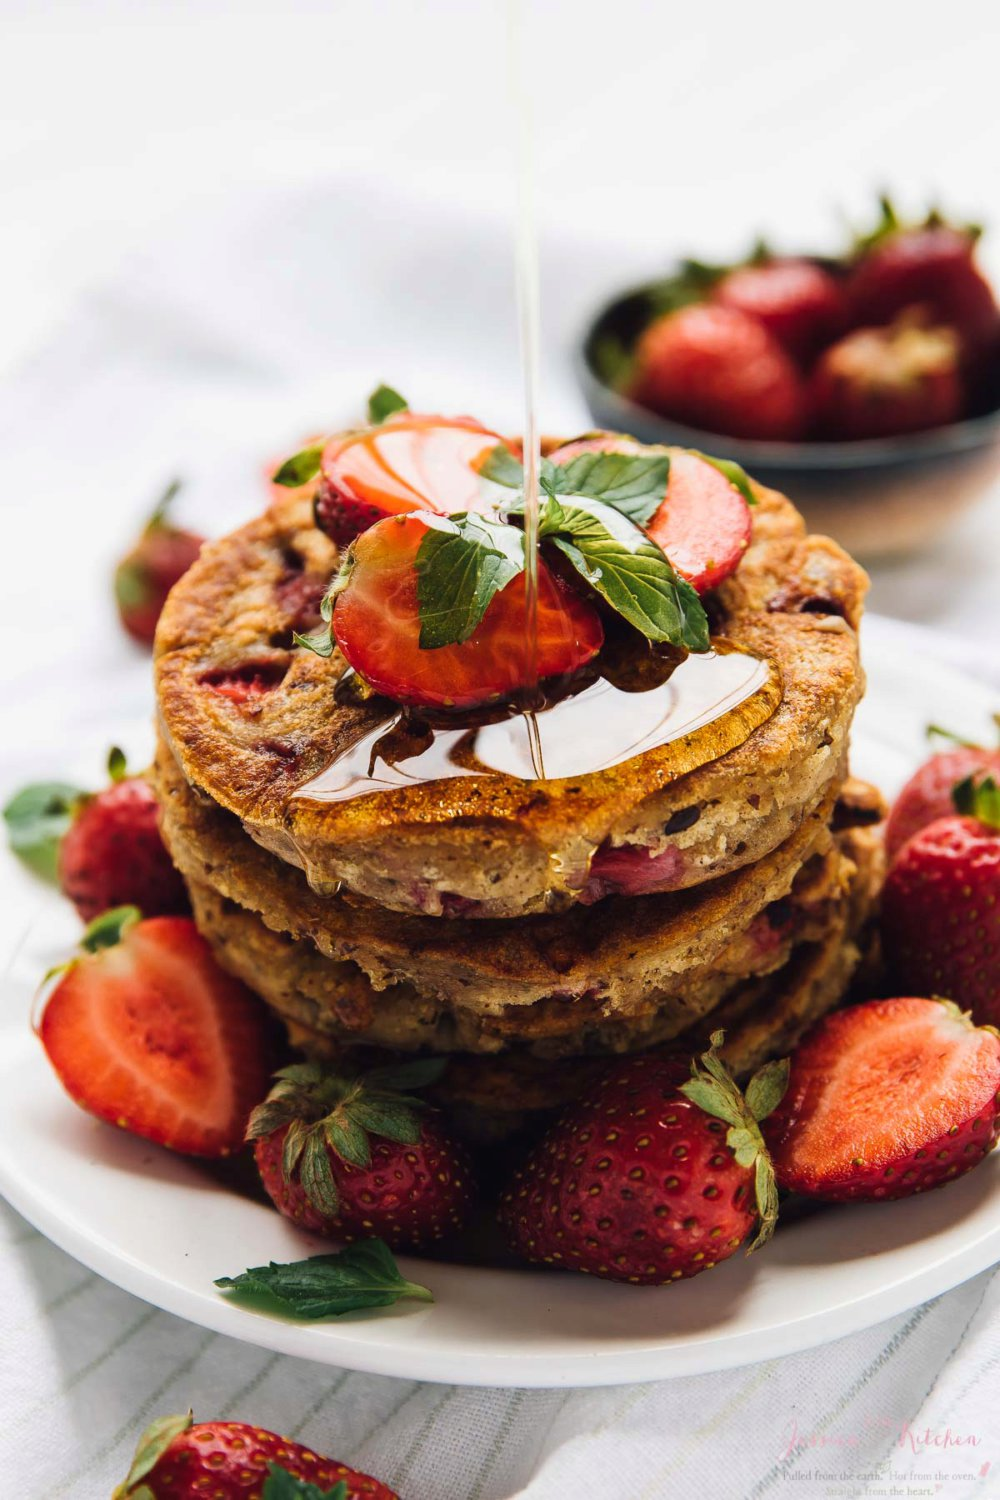 Fluffy Vegan Strawberry Pancakes (Gluten Free)